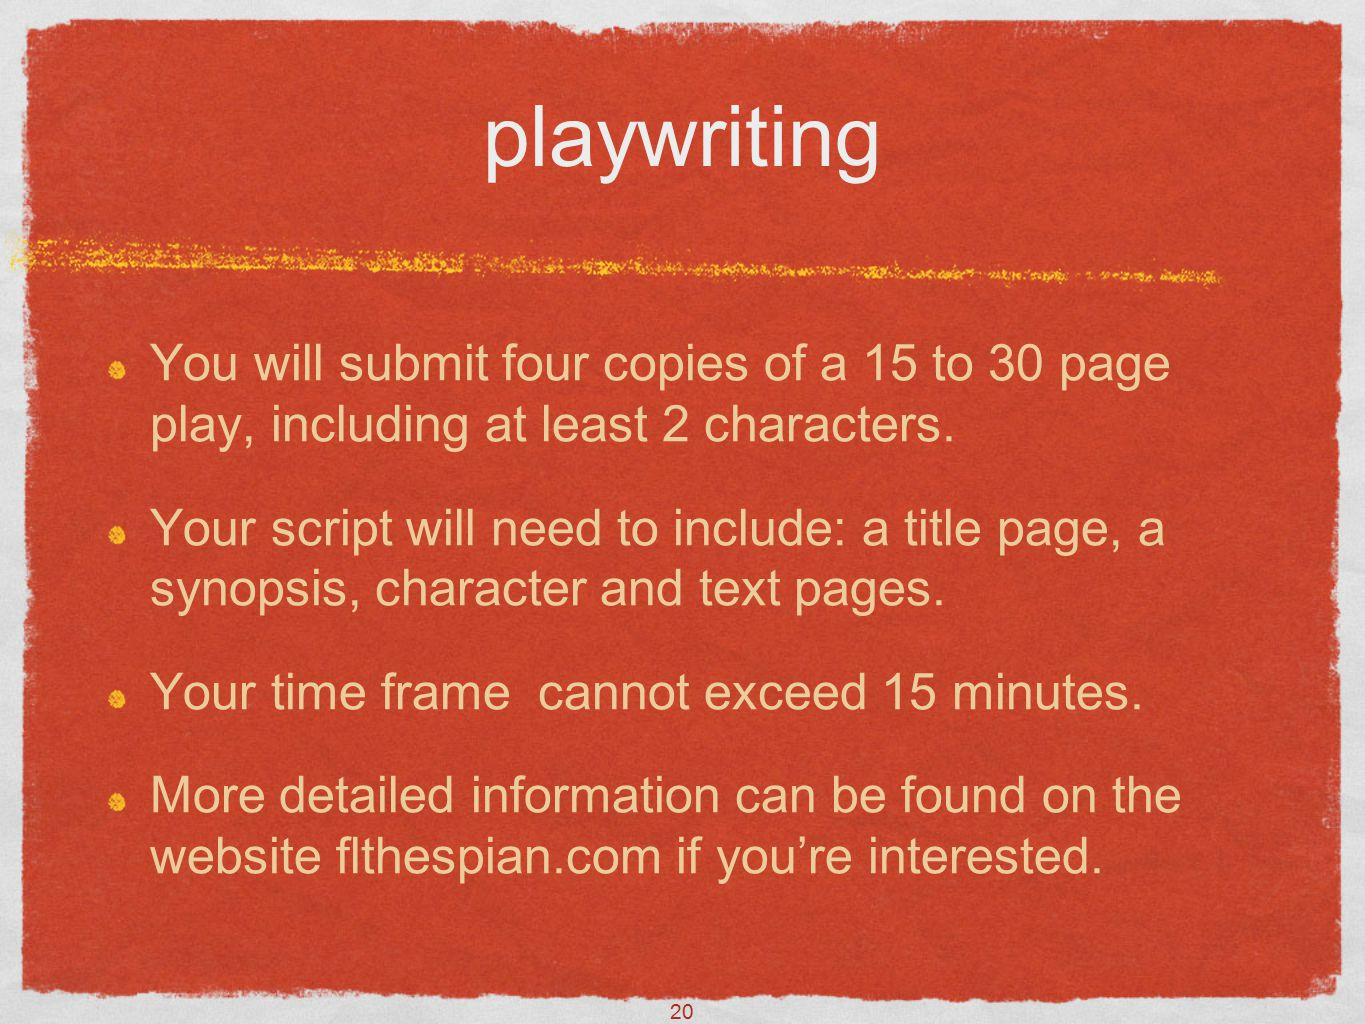 20 playwriting You will submit four copies of a 15 to 30 page play, including at least 2 characters.